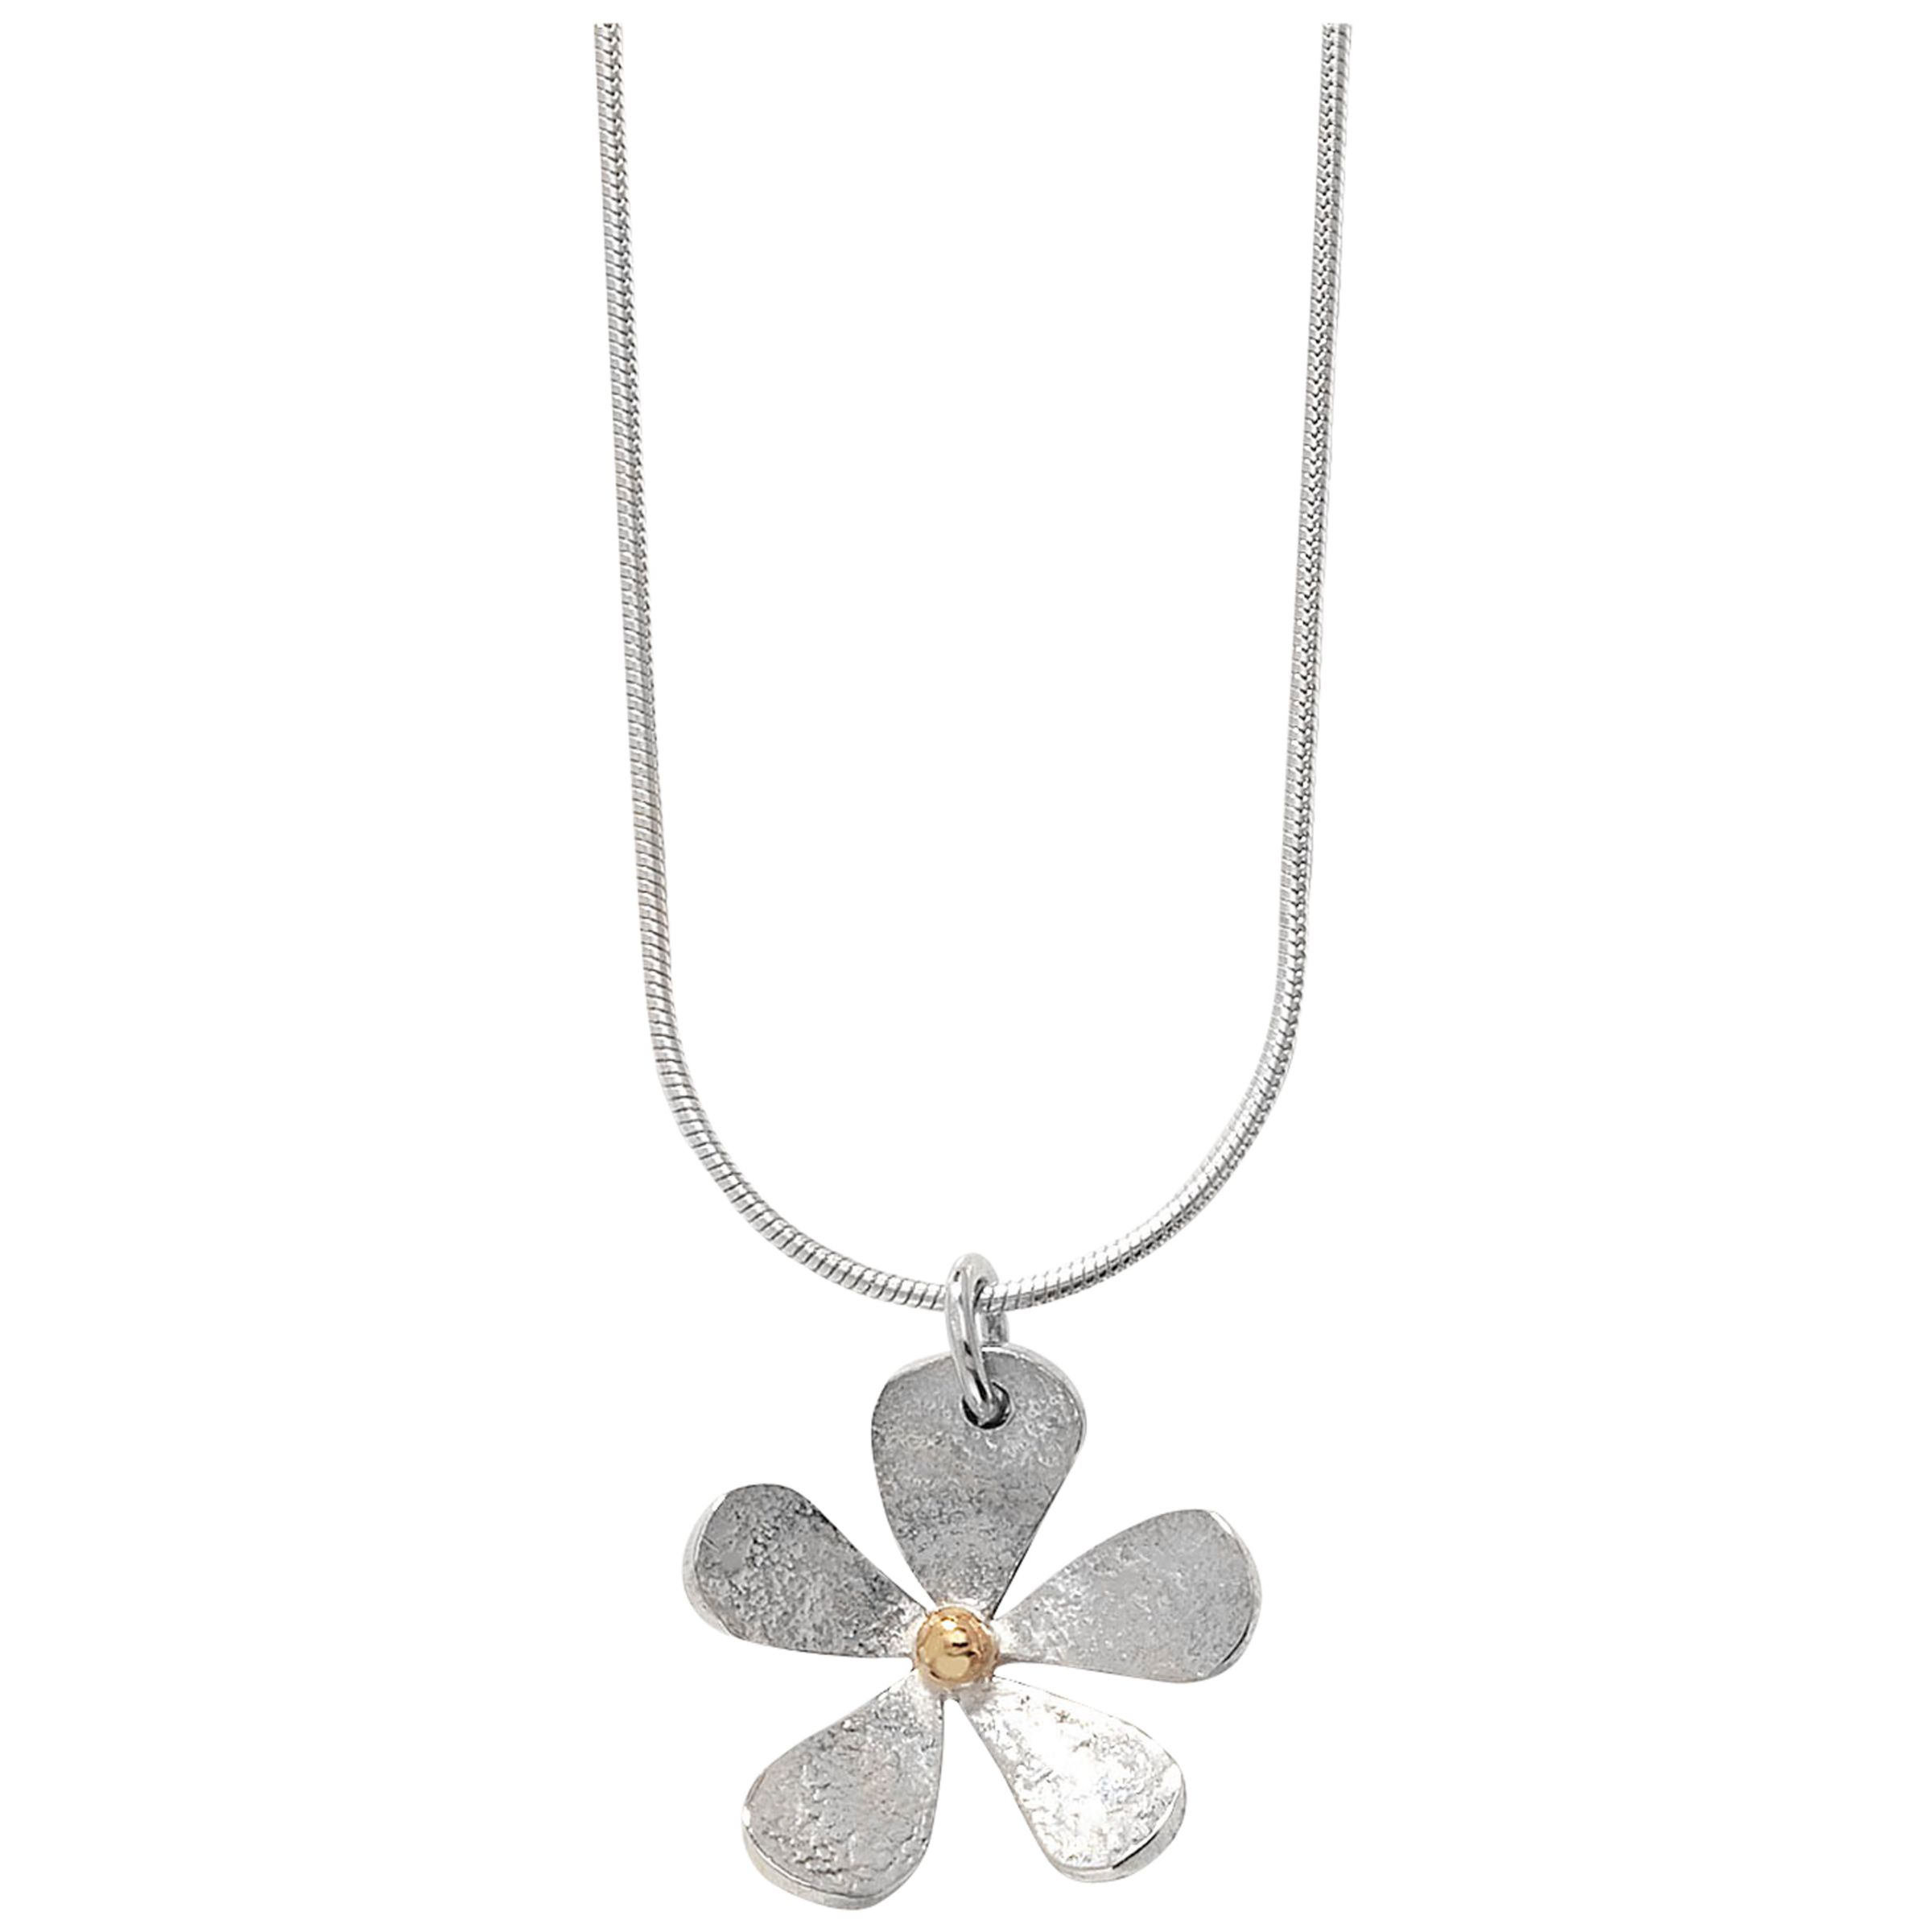 Linda Macdonald Daisie Pendant Necklaces